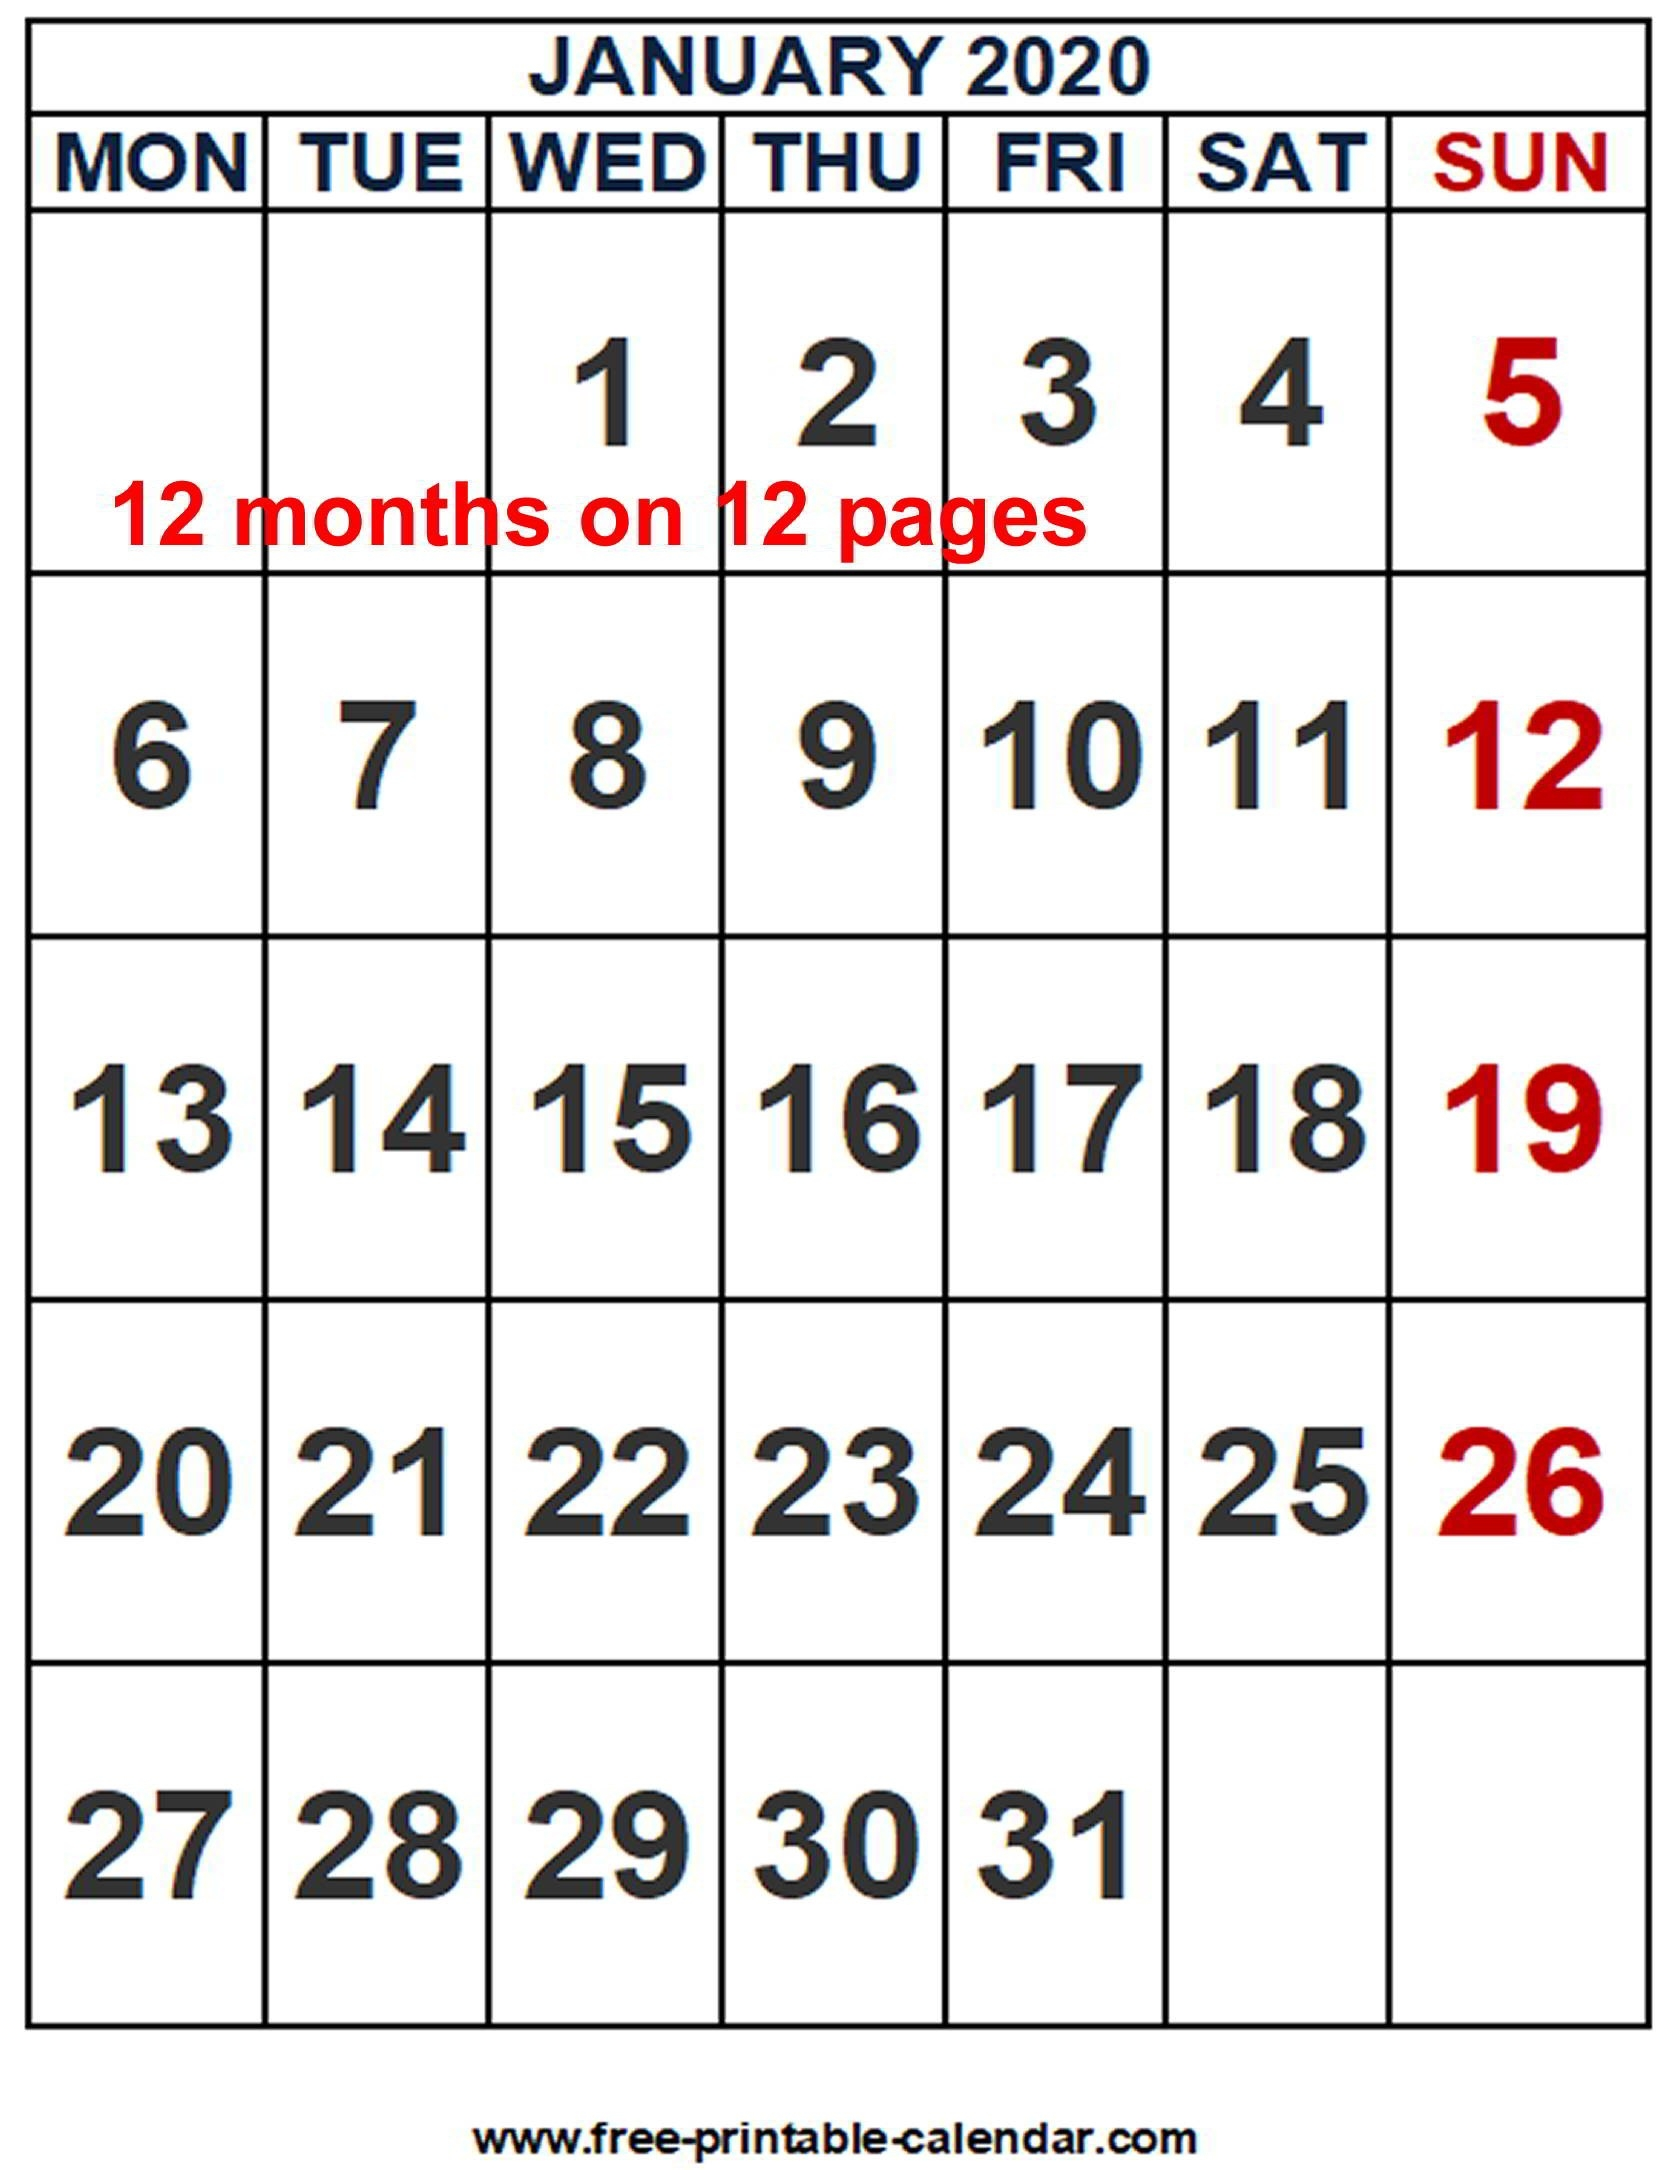 013 Calendar Word Template Free Staggering Ideas 2018 2019-Free Microsoft Word Calendar Template 2020